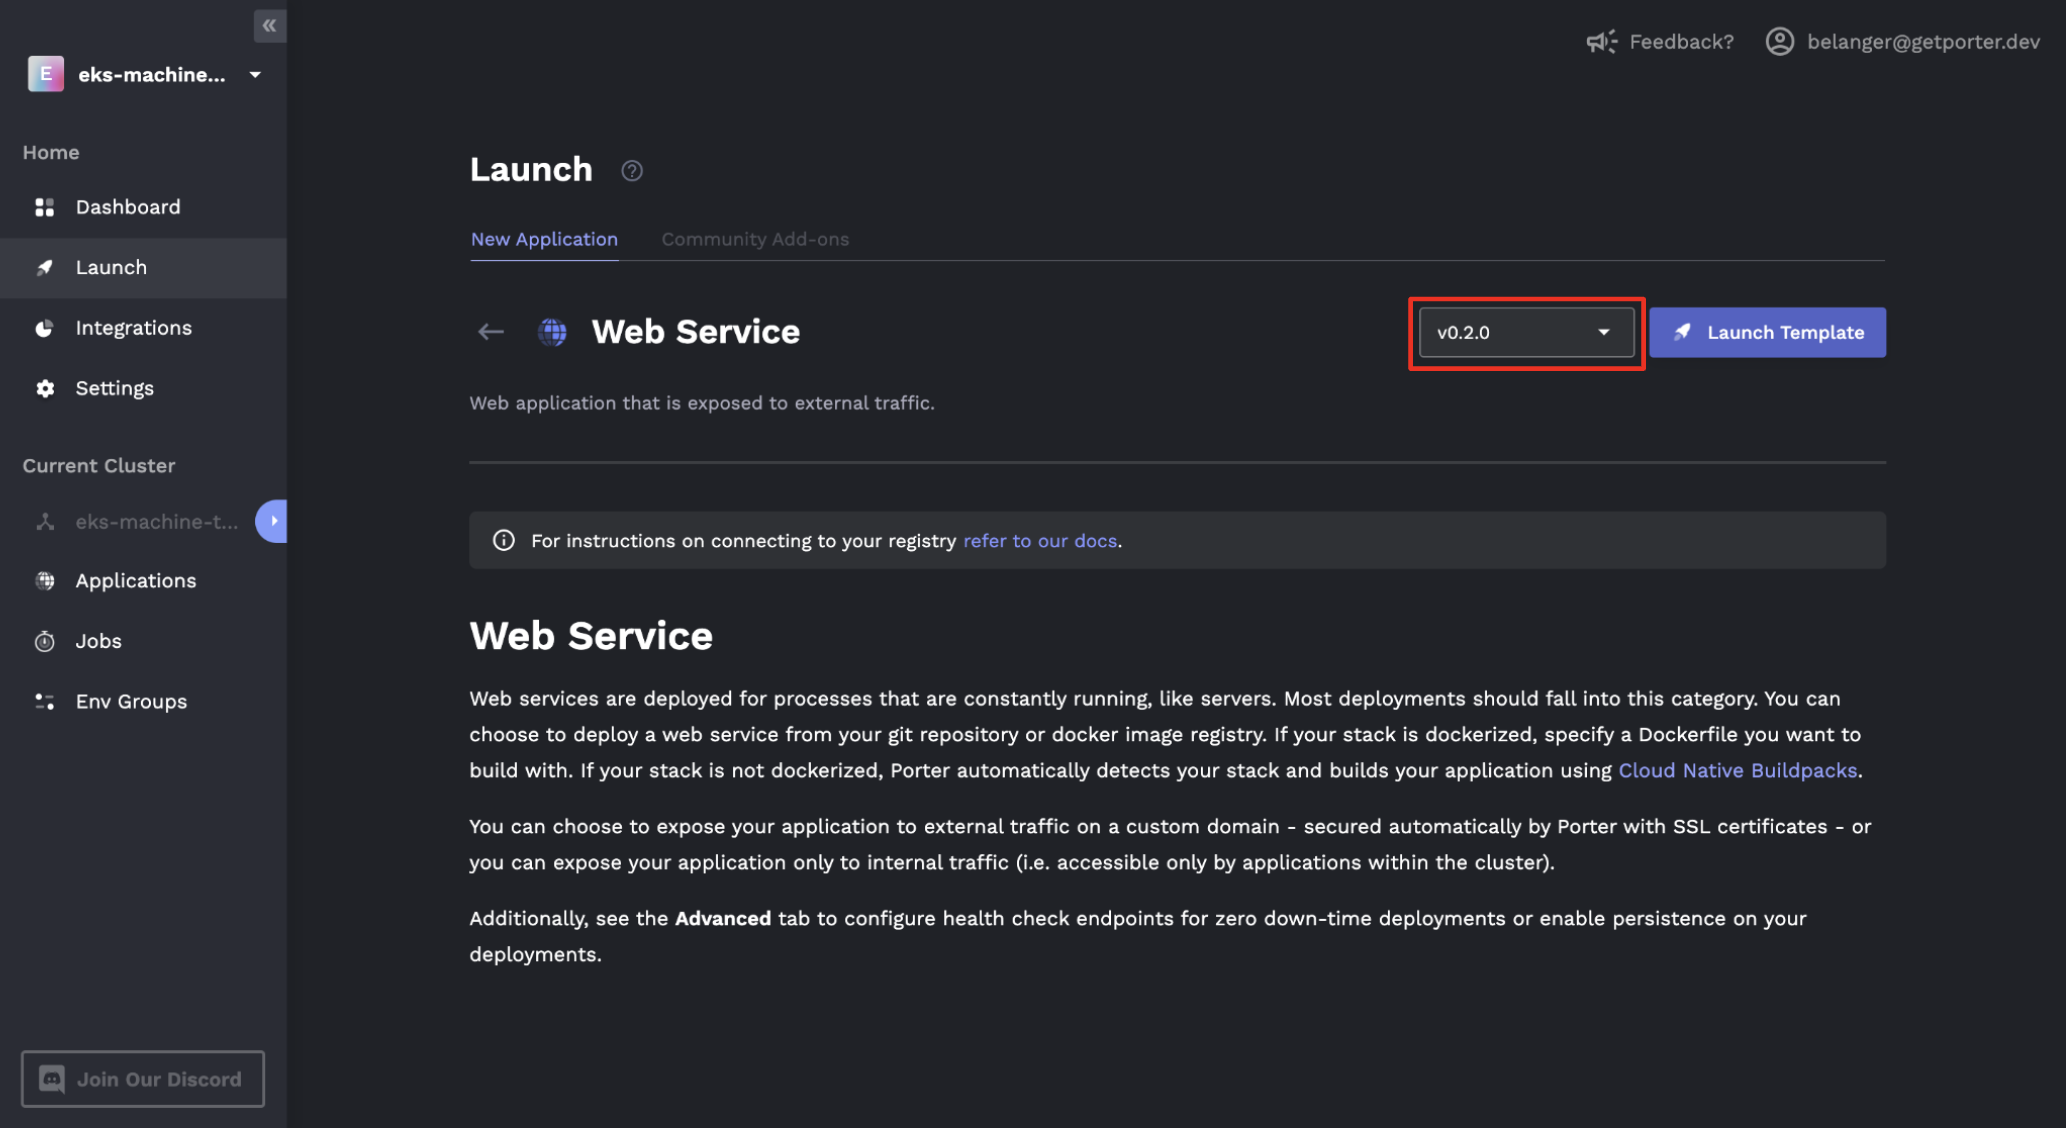 Launch template version